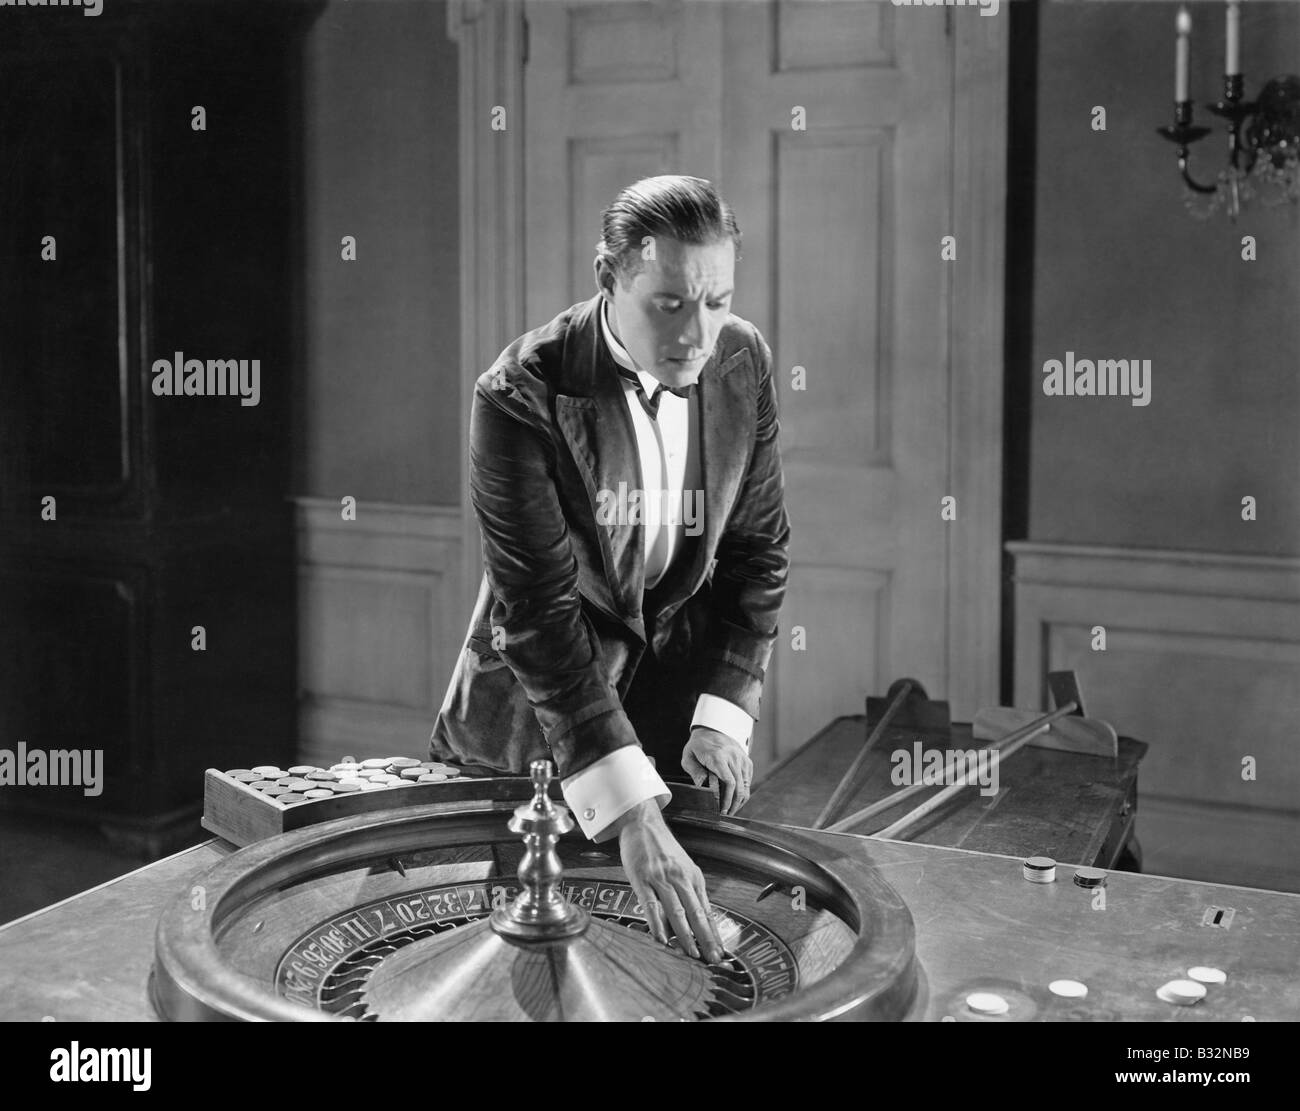 Man with roulette table Stock Photo